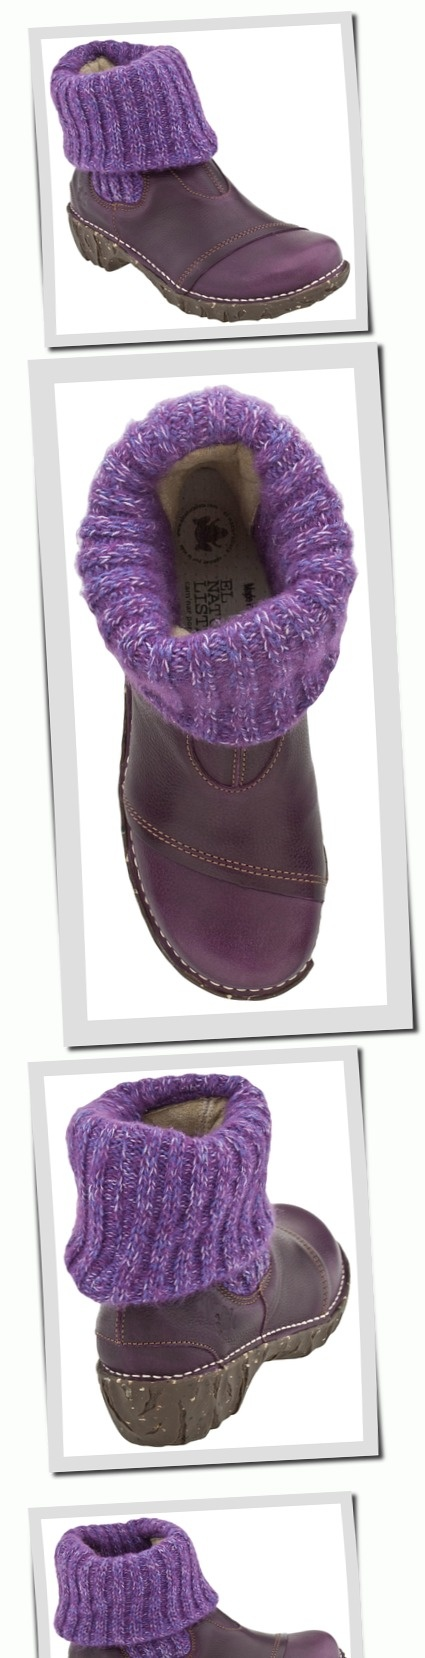 the best boots for mild winters - El Naturalista Iggdrasil N097 from www.planetshoes.com